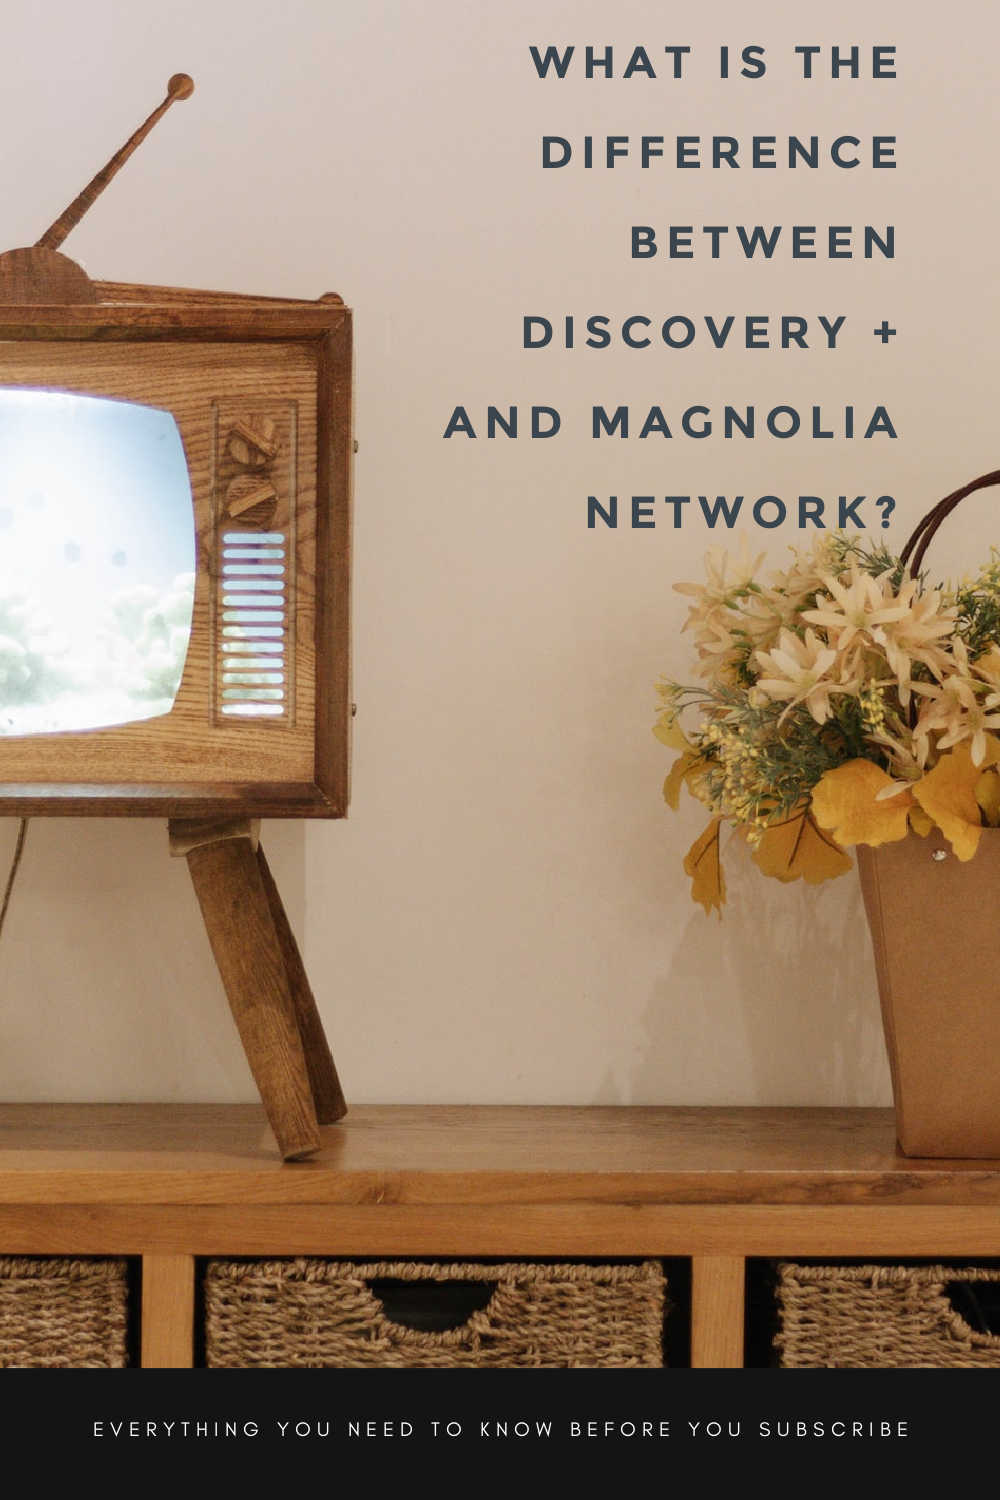 DIFFERENCE BETWEEN MAGNOLIA NETWORK AND DISCOVERY PLUS